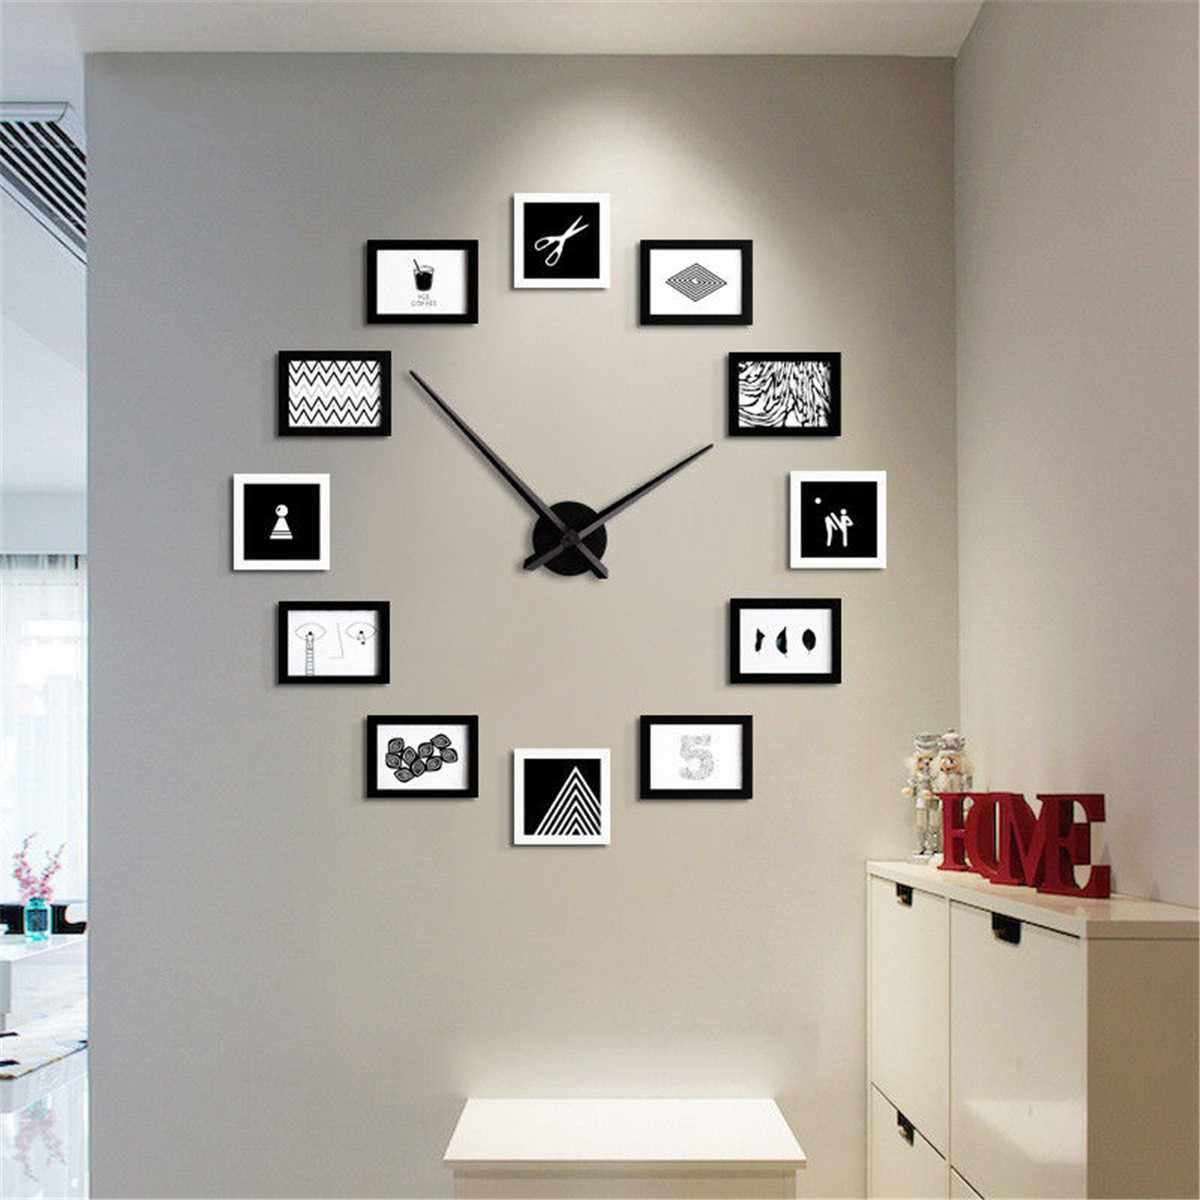 2019 12 Photo Frames Wall Clock Modern Design Wood Photo Frame Clock Nordic Style Art Pictures Watch Home Decor Decorative Large Wall Clocks Decorative Metal Wall Clocks From Industrial 47 84 Dhgate Com